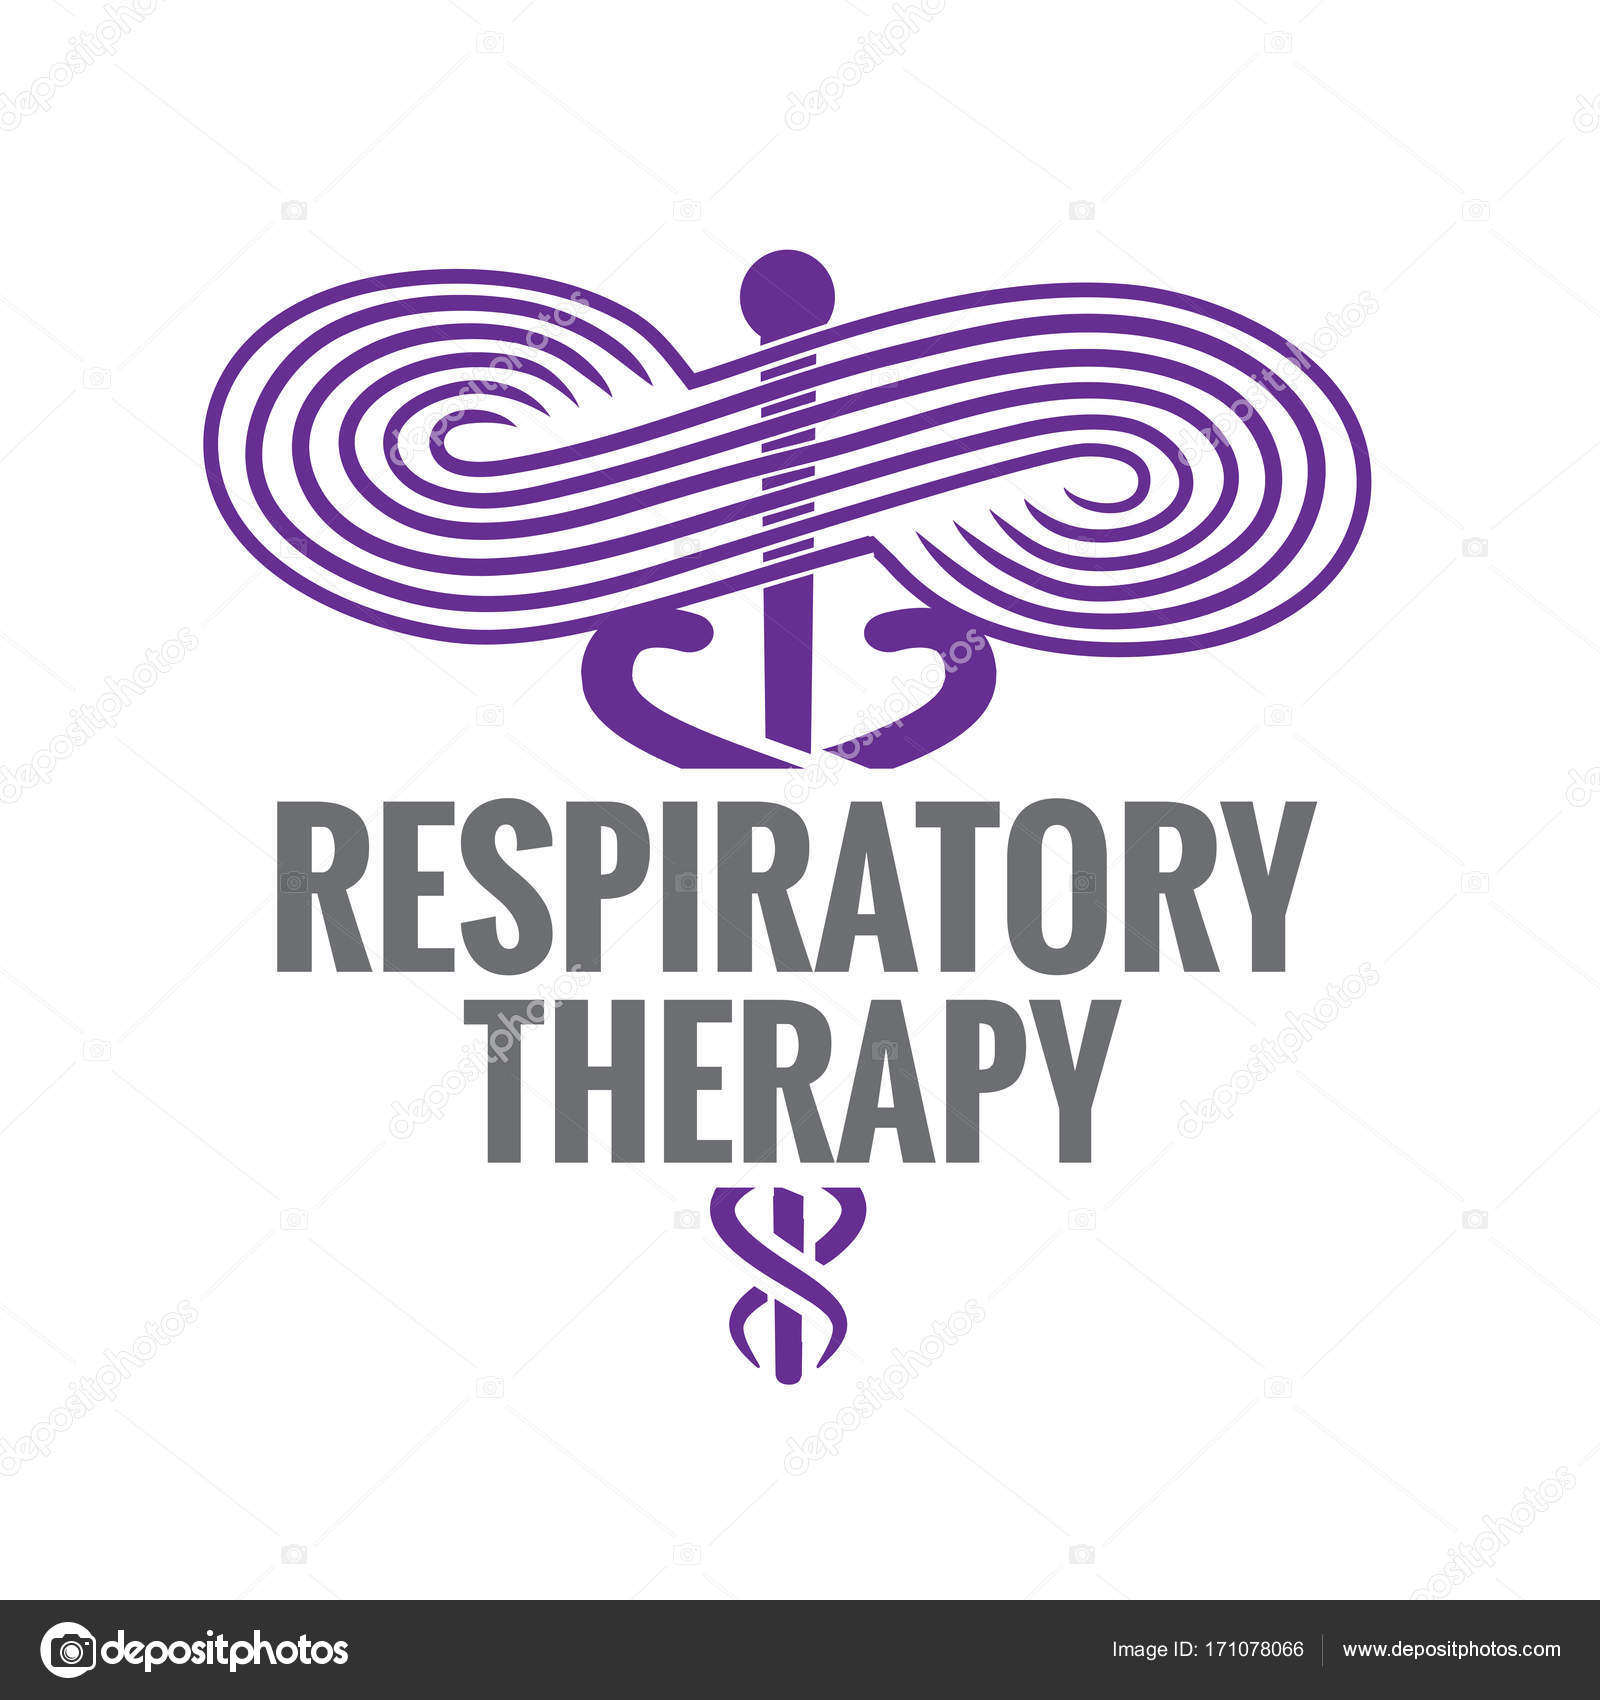 Respiratory therapy medical symbol icon for rrt rt or crt respiratory therapy medical symbol icon for rrt rt or crt stock vector biocorpaavc Choice Image